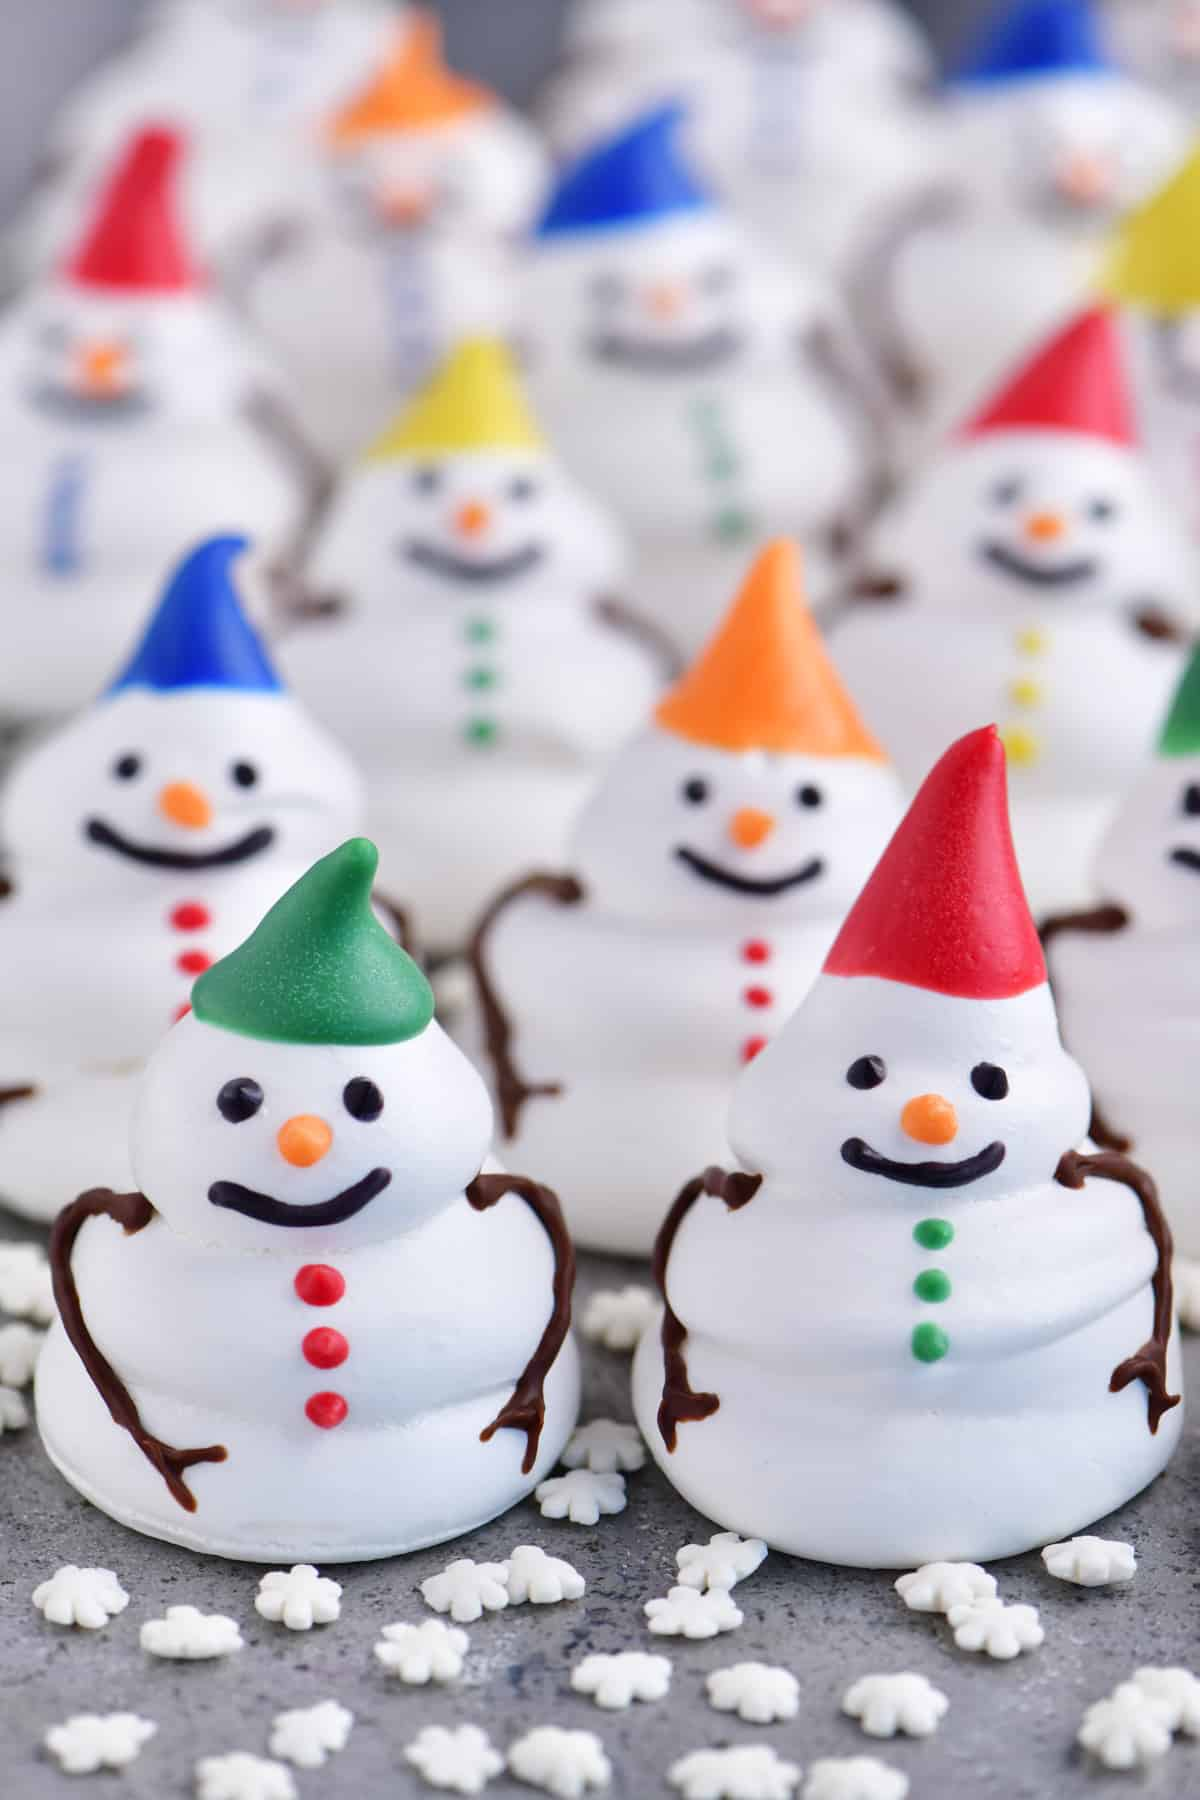 a photo of several meringue snowman cookies with colorful hats and buttons